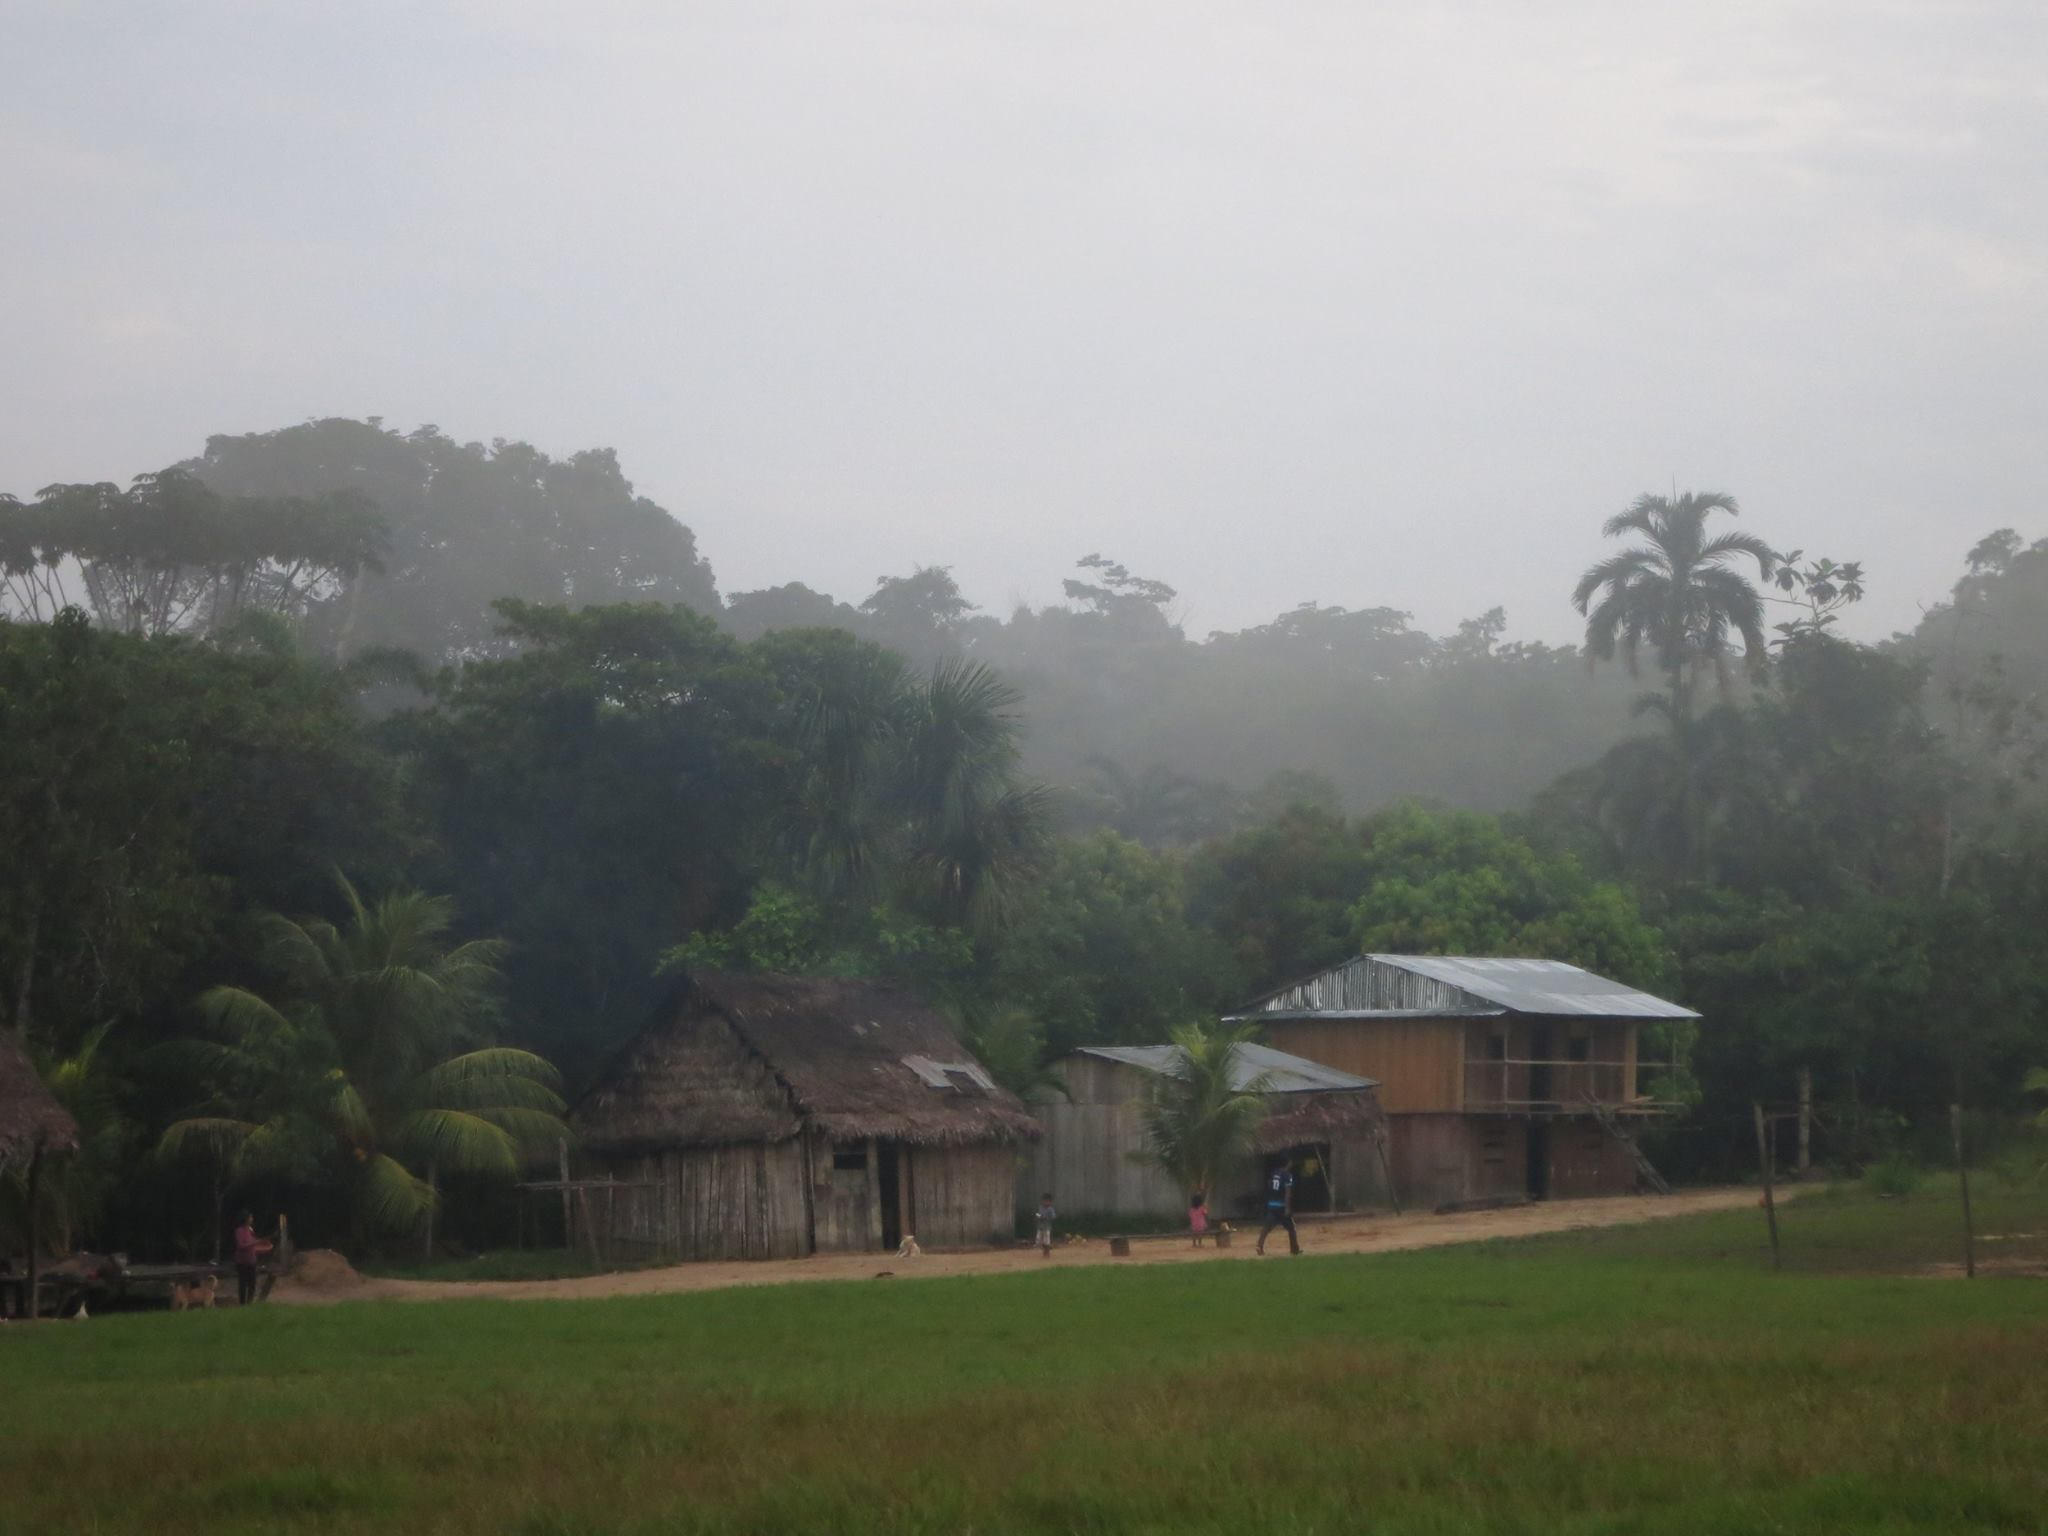 That's not fog or rain, it's the jungle humidity!!!